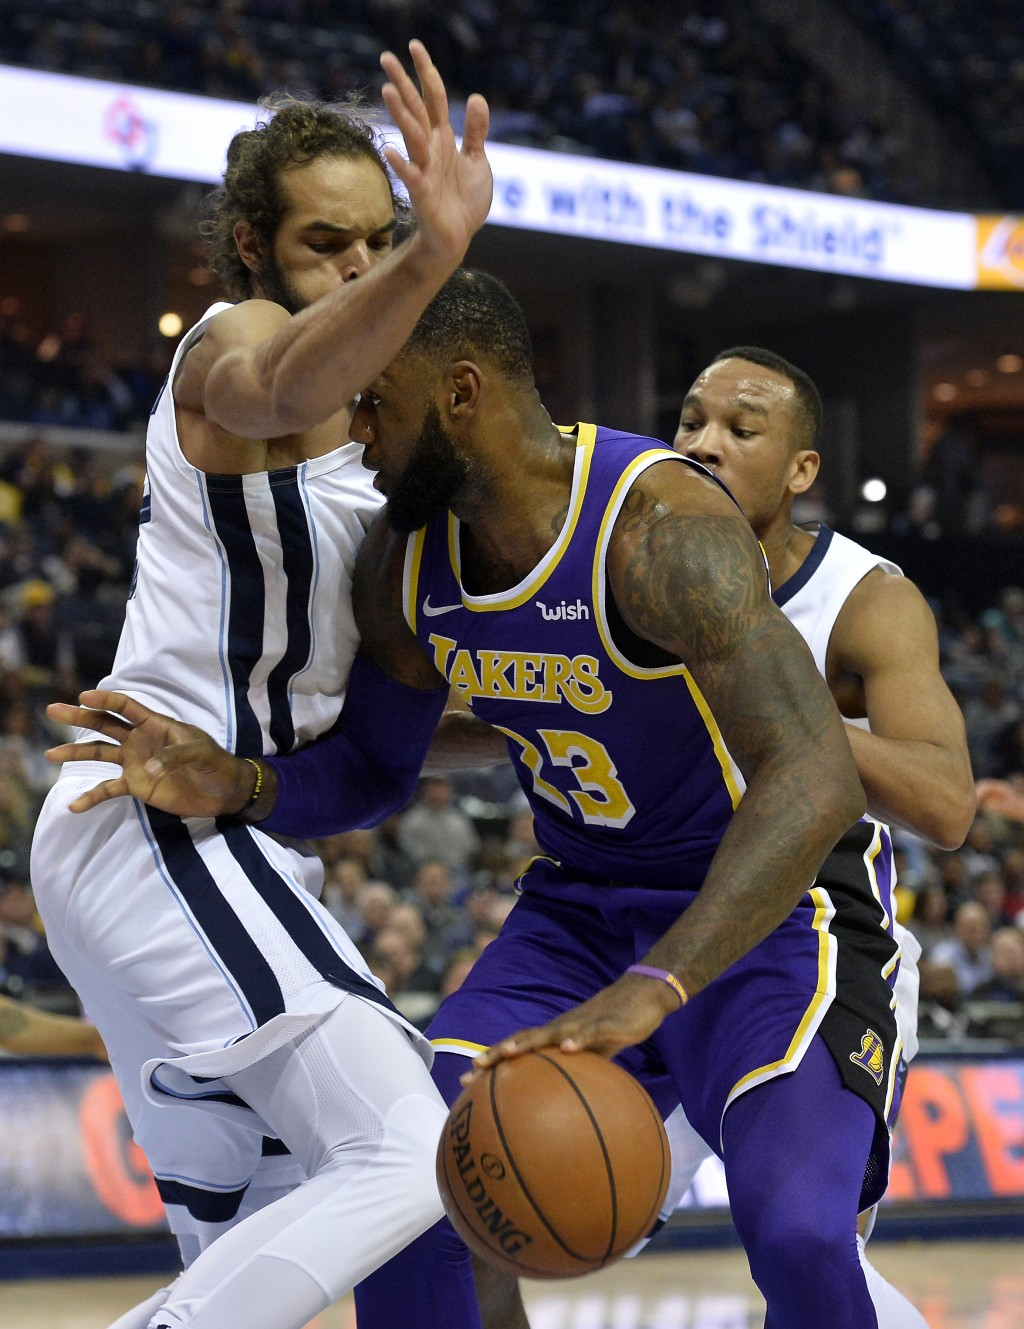 Los Angeles Lakers forward LeBron James (23) handles the ball between Memphis Grizzlies center Joakim Noah, left, and guard Avery Bradley in the first